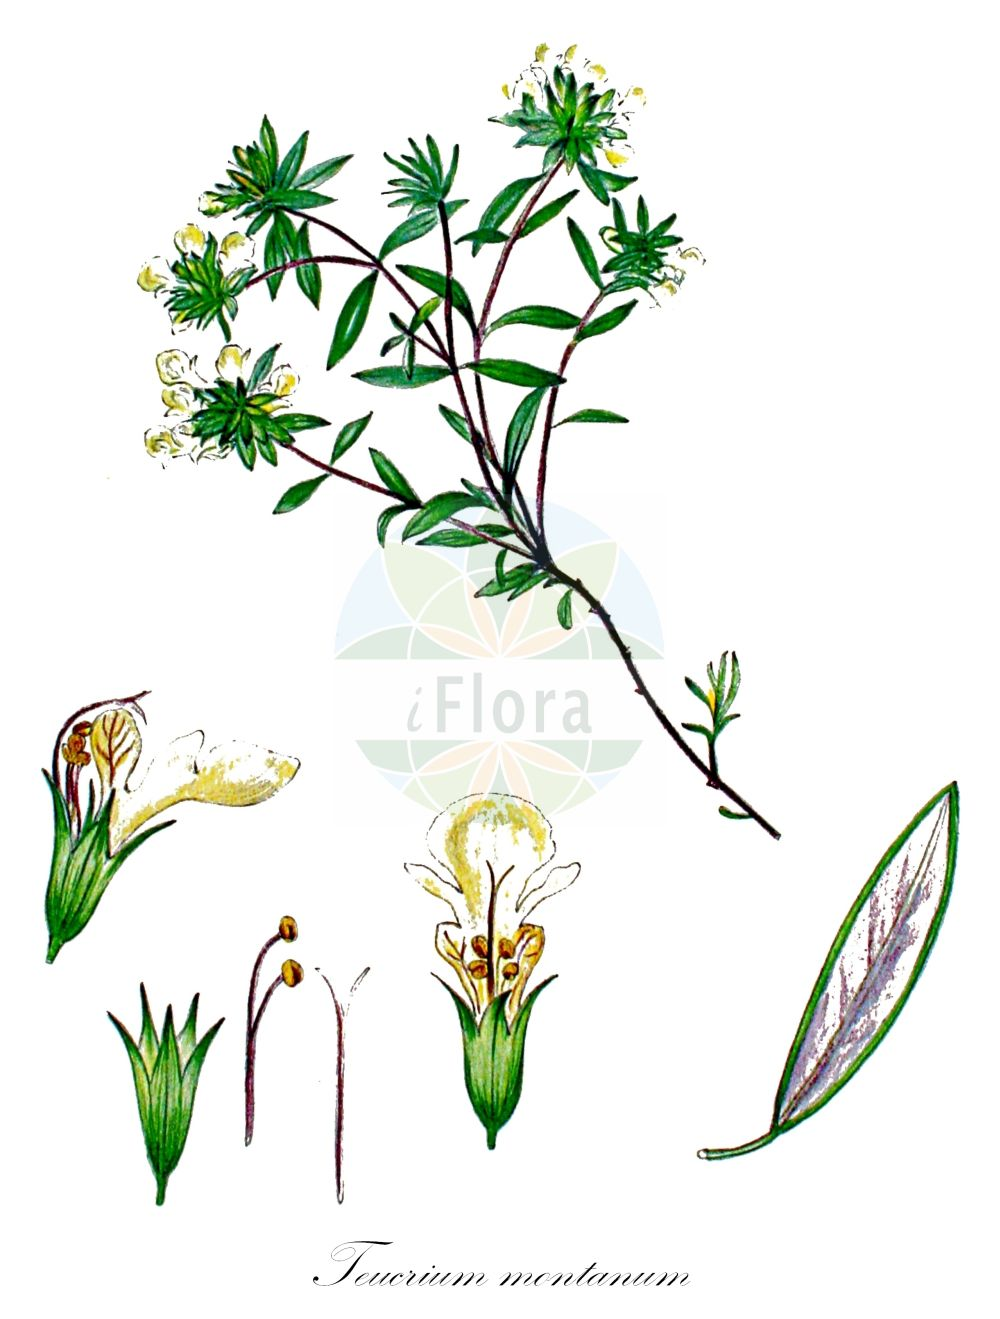 Historische Abbildung von Teucrium montanum (Berg-Gamander - Mountain Germander). Das Bild zeigt Blatt, Bluete, Frucht und Same. ---- Historical Drawing of Teucrium montanum (Berg-Gamander - Mountain Germander).The image is showing leaf, flower, fruit and seed.(Teucrium montanum,Berg-Gamander,Mountain Germander,Chamaedrys montana,Polium montanum,,Teucrium,Gamander,Germander,Lamiaceae,Lippenbluetengewaechse;Lippenbluetler,Nettle family,Blatt,Bluete,Frucht,Same,leaf,flower,fruit,seed,Kops (1800-1934))